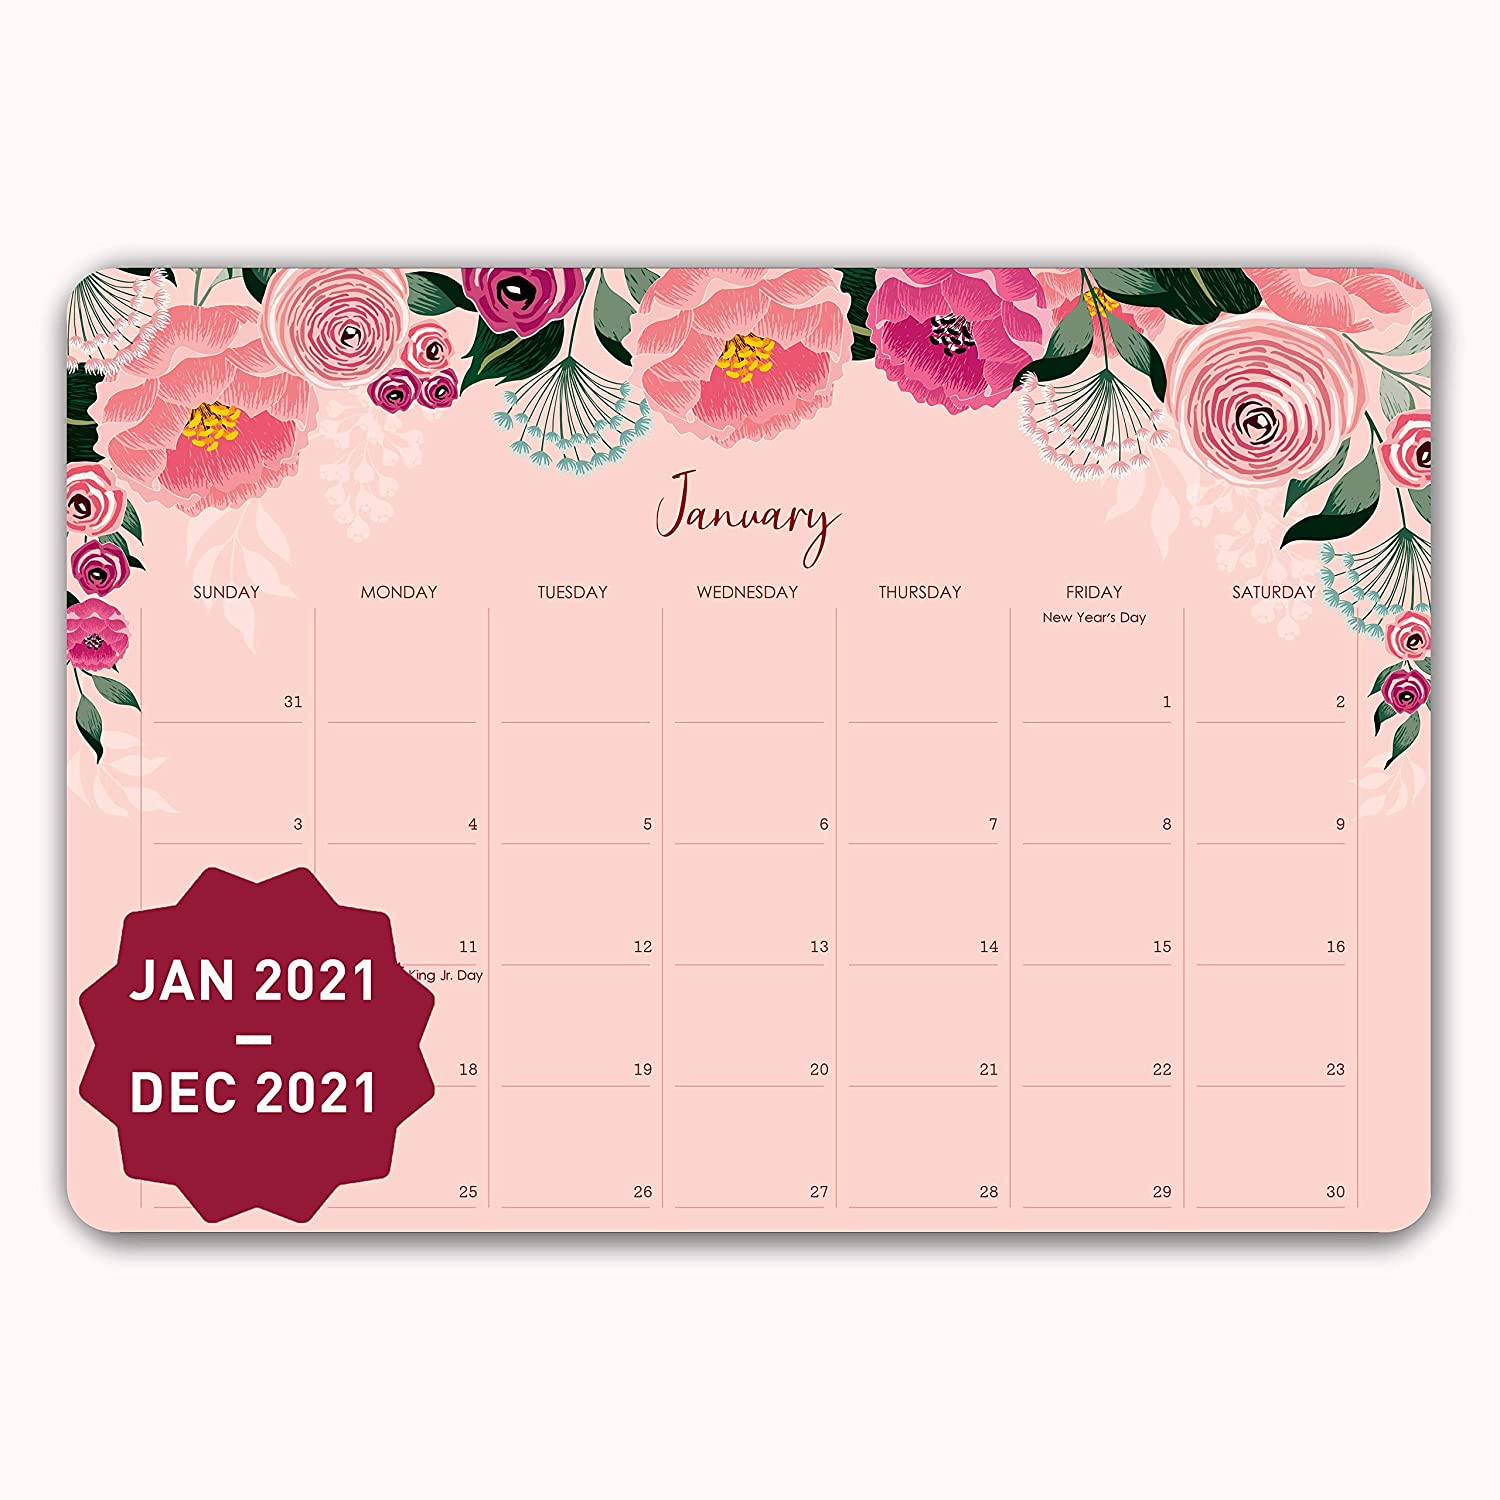 MUDRIT 2021 Desk/Wall Yearly Calendar, Large Pages 12 X 17 Monthly Daily Planner (Jan 2021 - Dec 2021), Big Blotter Desktop/Hanging Pad - Office, Home, Family,Business, School Appointment Planning